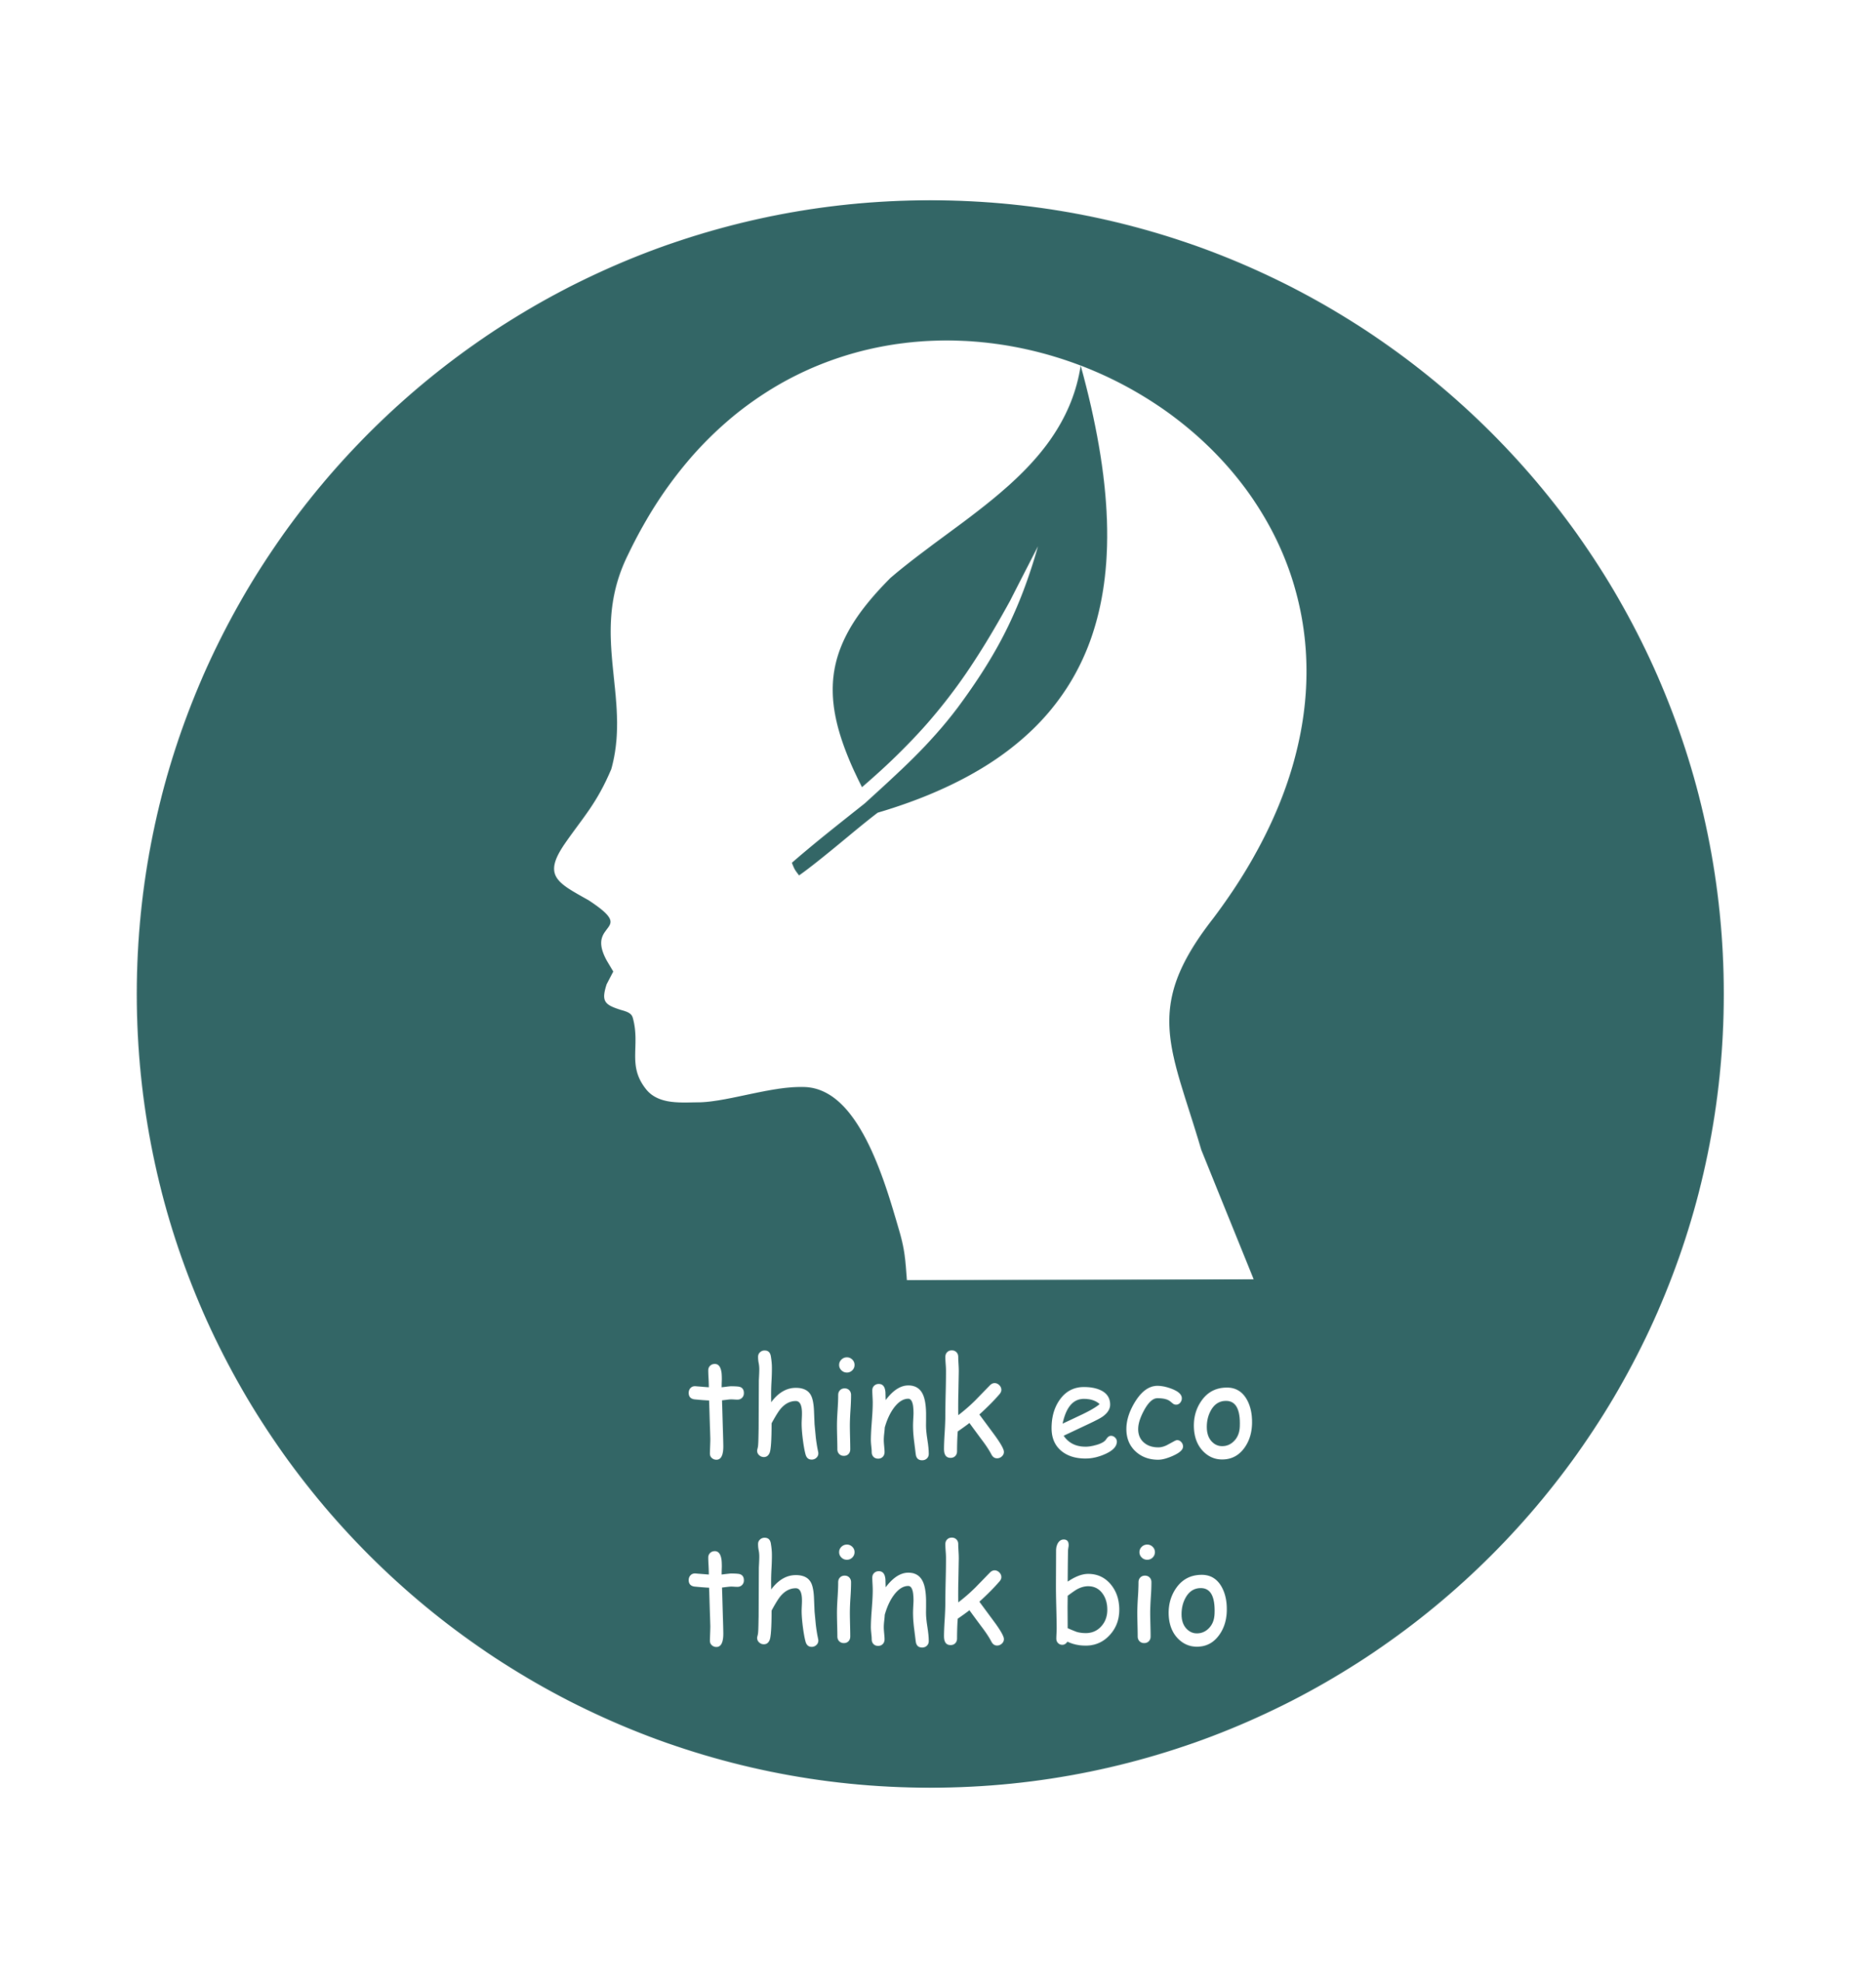 thinkecothinkbio